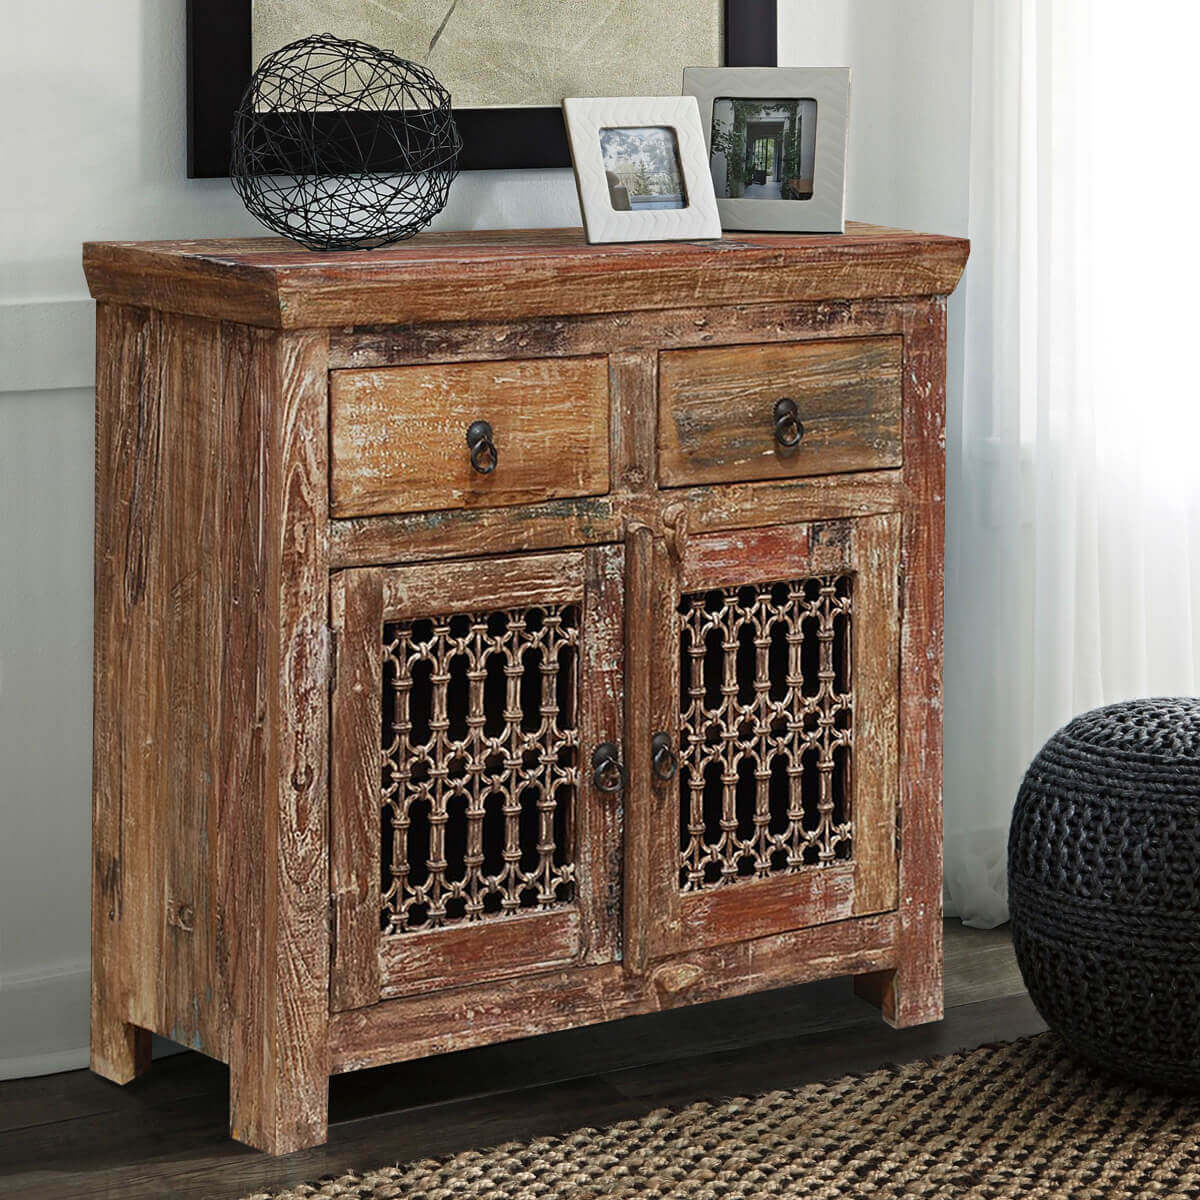 Natoas Rustic Reclaimed Wood Iron Grill Door 2 Drawer Buffet Cabinet